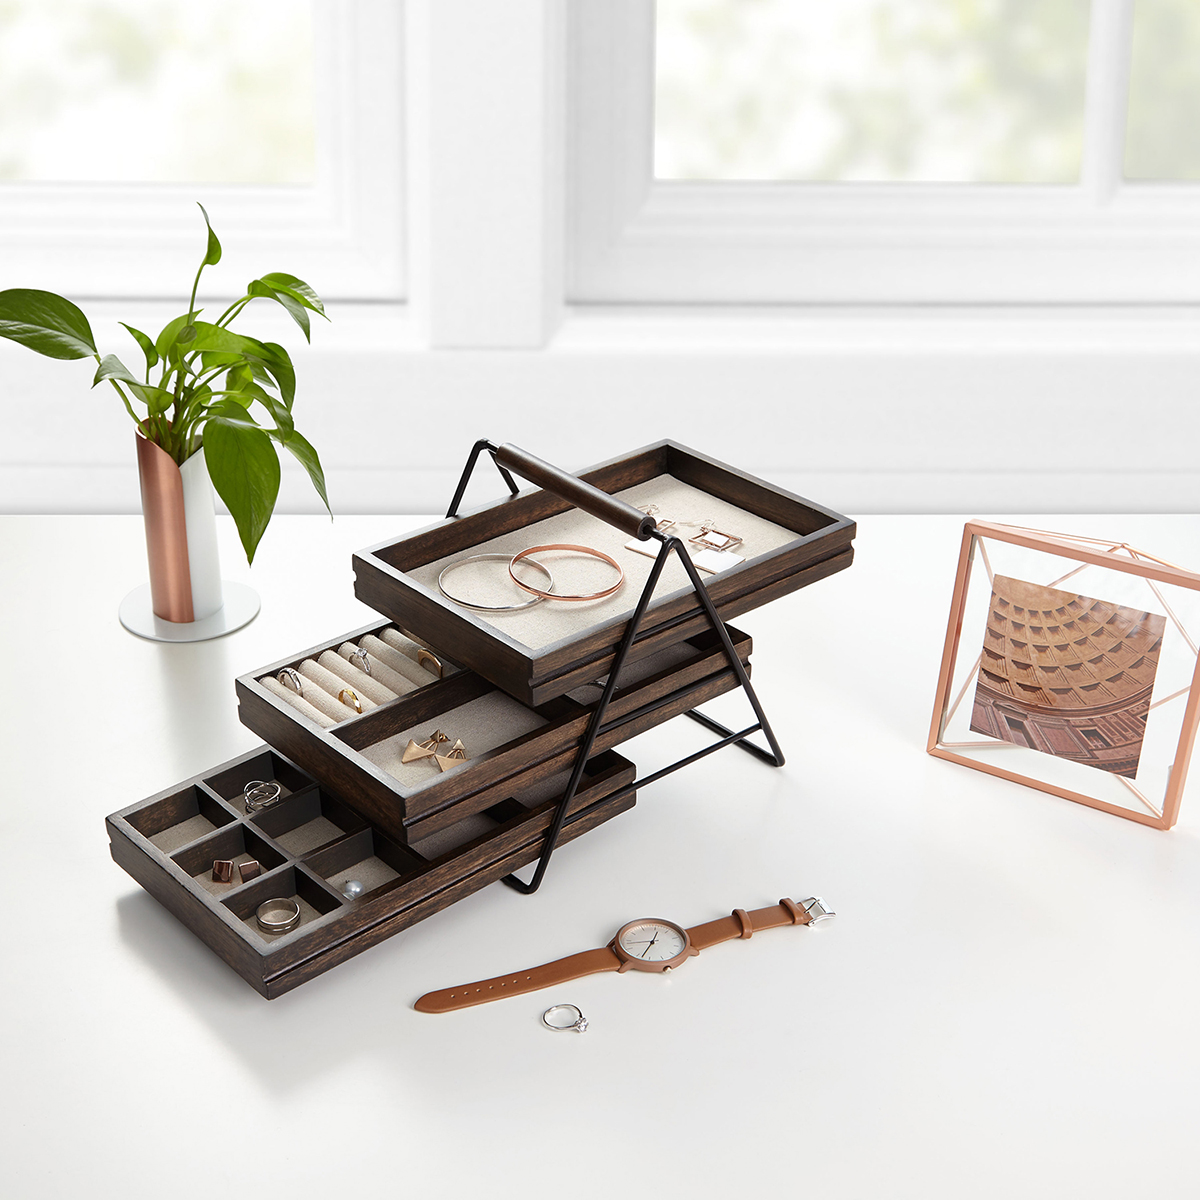 Jewelry organizers and boxes to keep your jewels organized